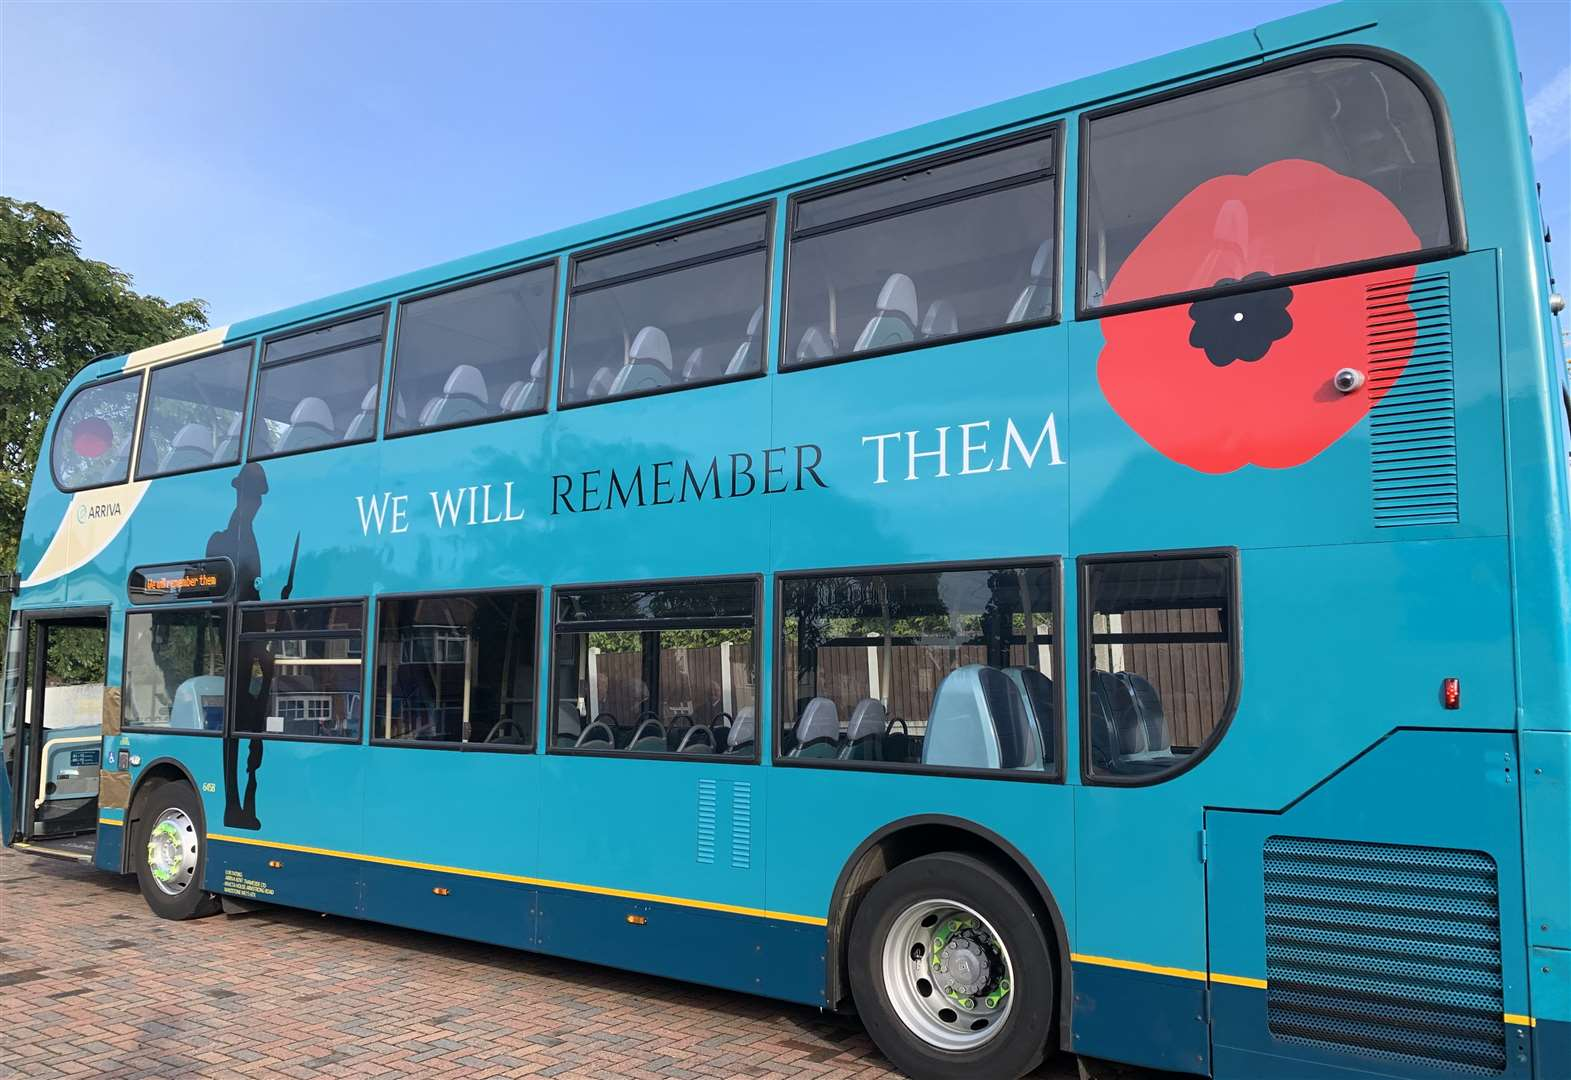 Free bus rides for Armed Forces